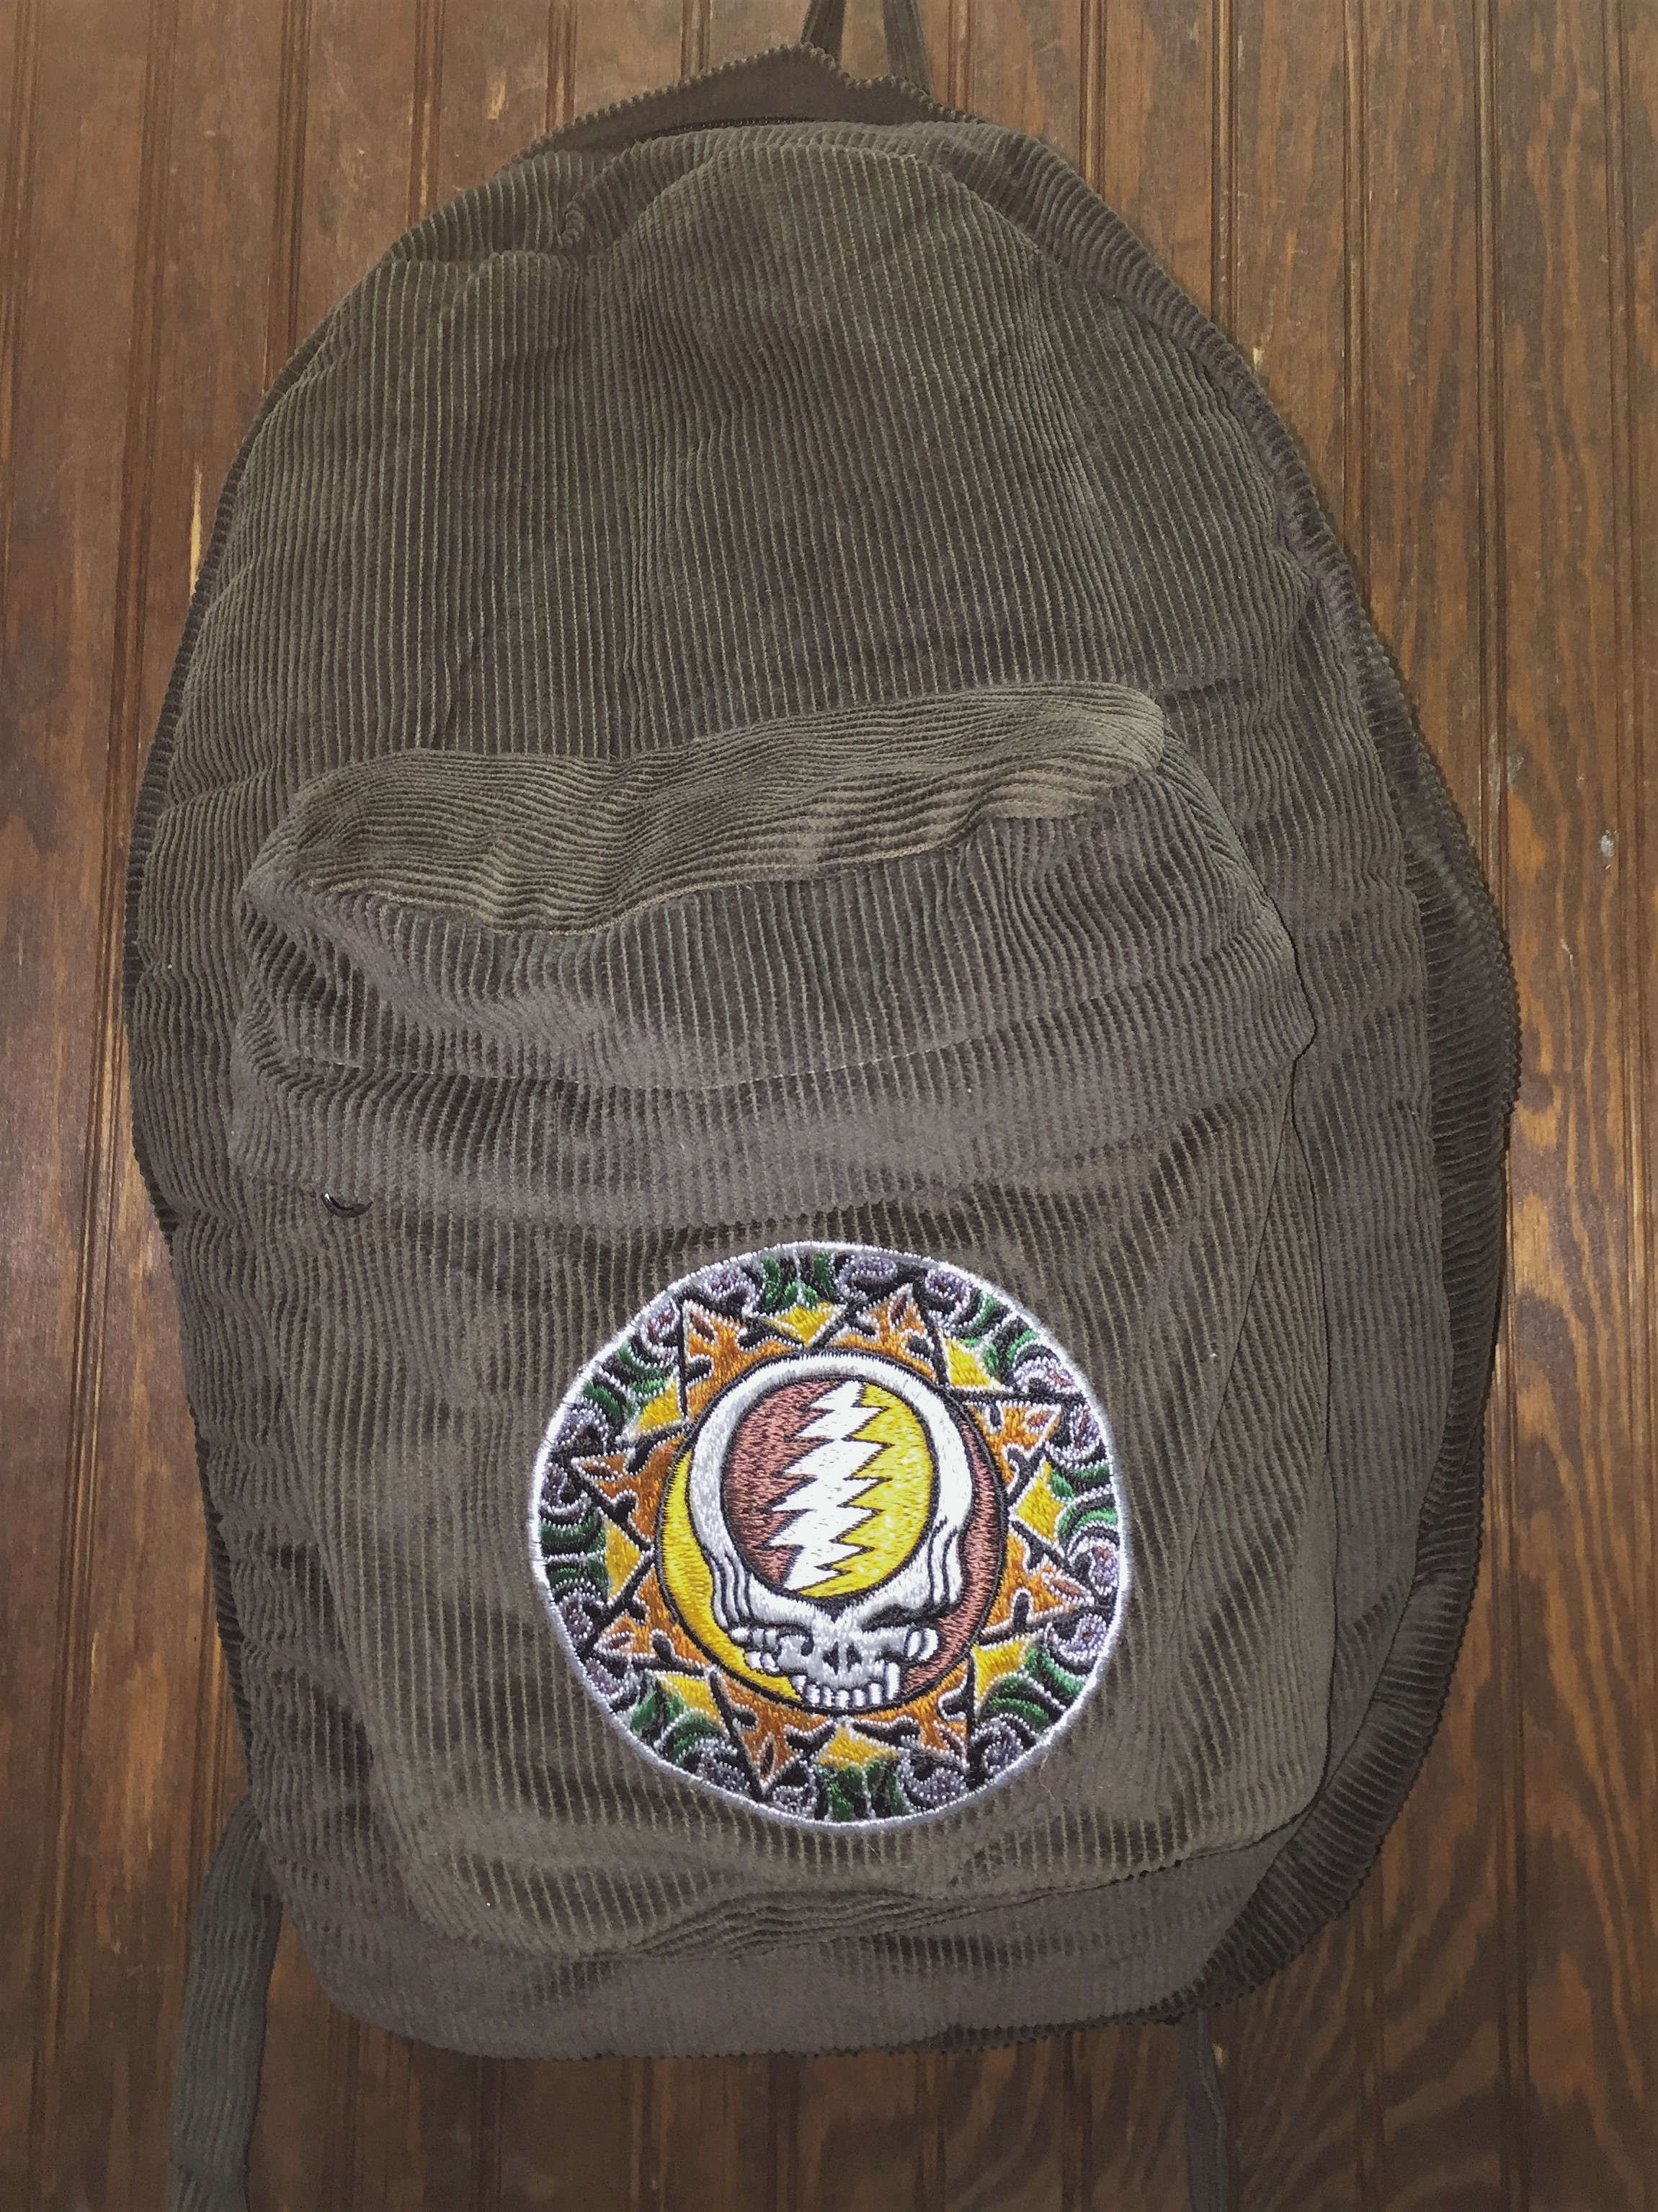 2eda02872ff Corduroy Syf Grateful Dead Backpack. Gallery. Lyst Urban Outers The Grateful  Dead Corduroy Snapback Hat In